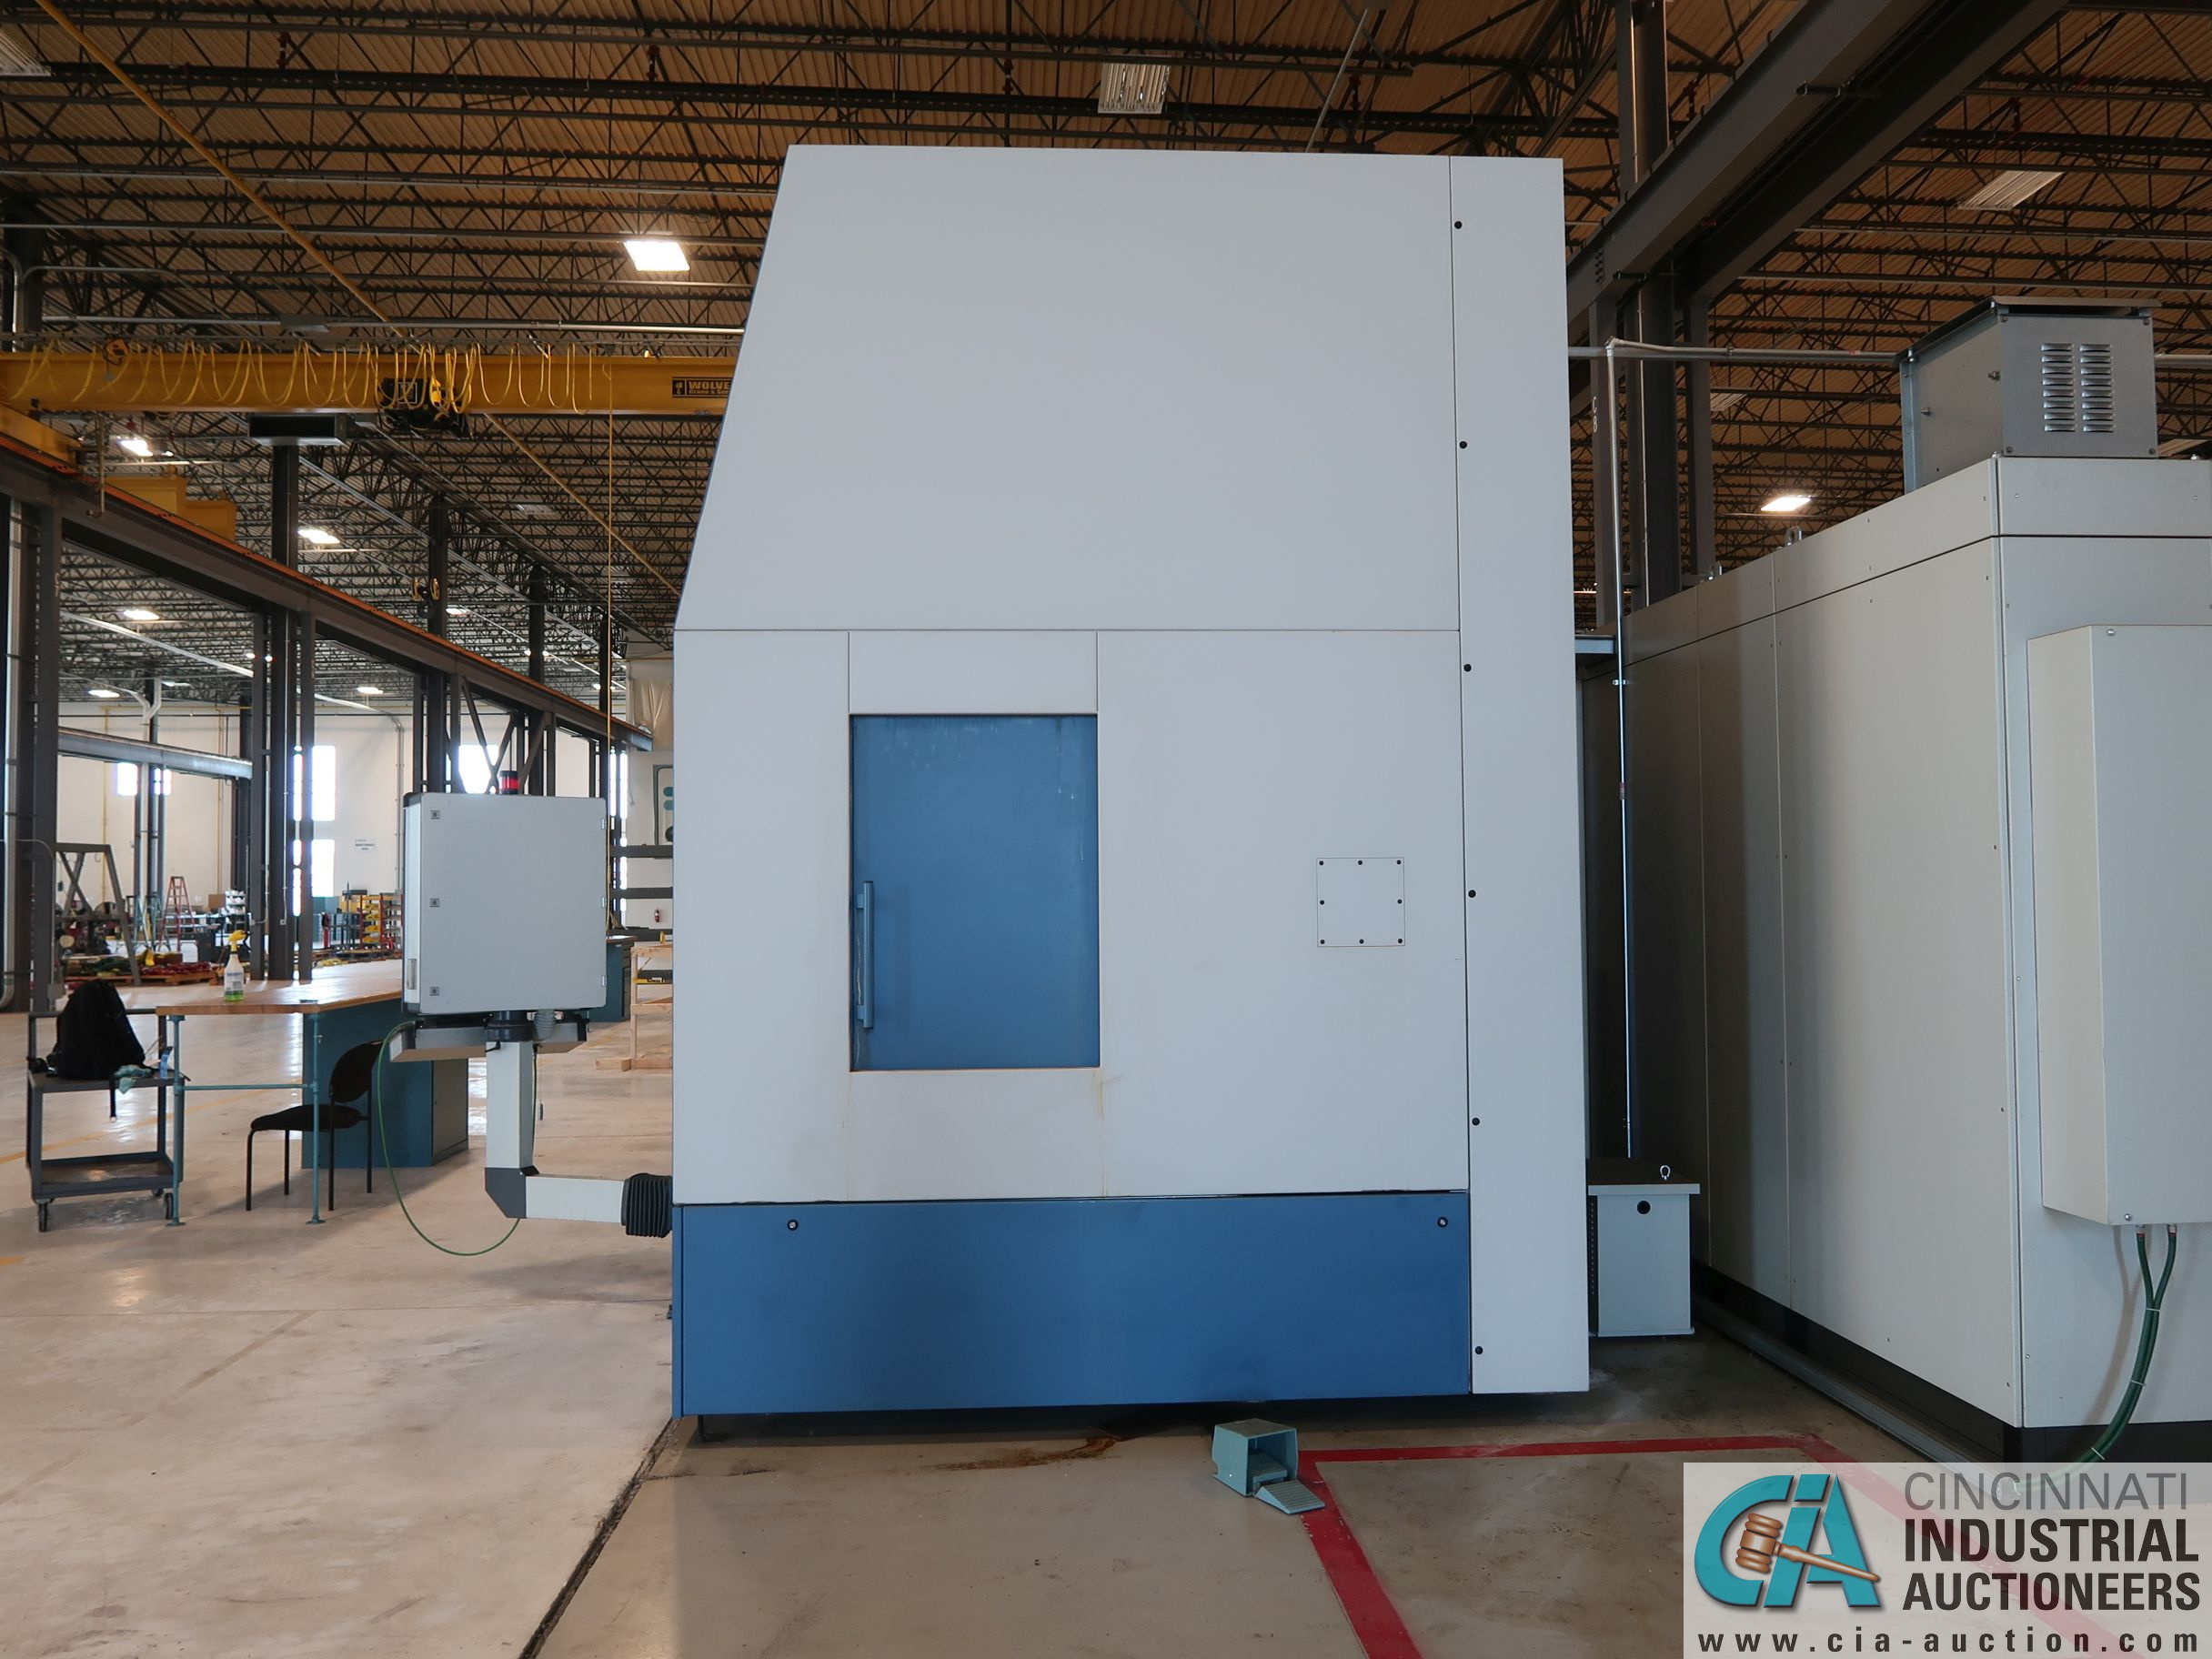 BERTHIEZ MODEL RVU 900/80 ID/OD, WITH TURNING, VERTICAL CNC GRINDER; S/N 4219, 84OD SIEMENS CONTROL - Image 22 of 33